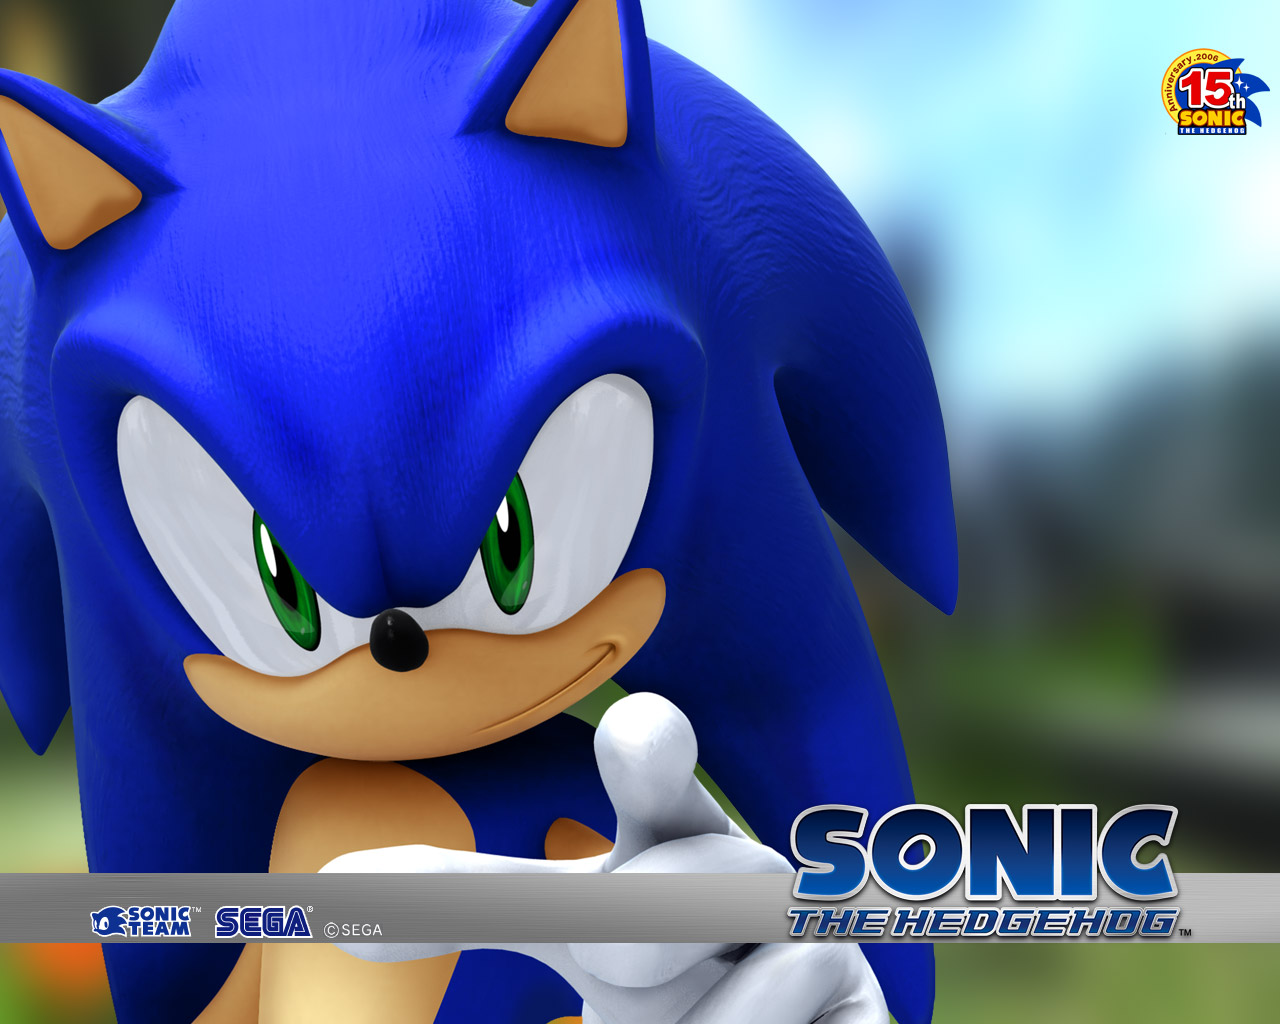 Sonic Hedgehog Games